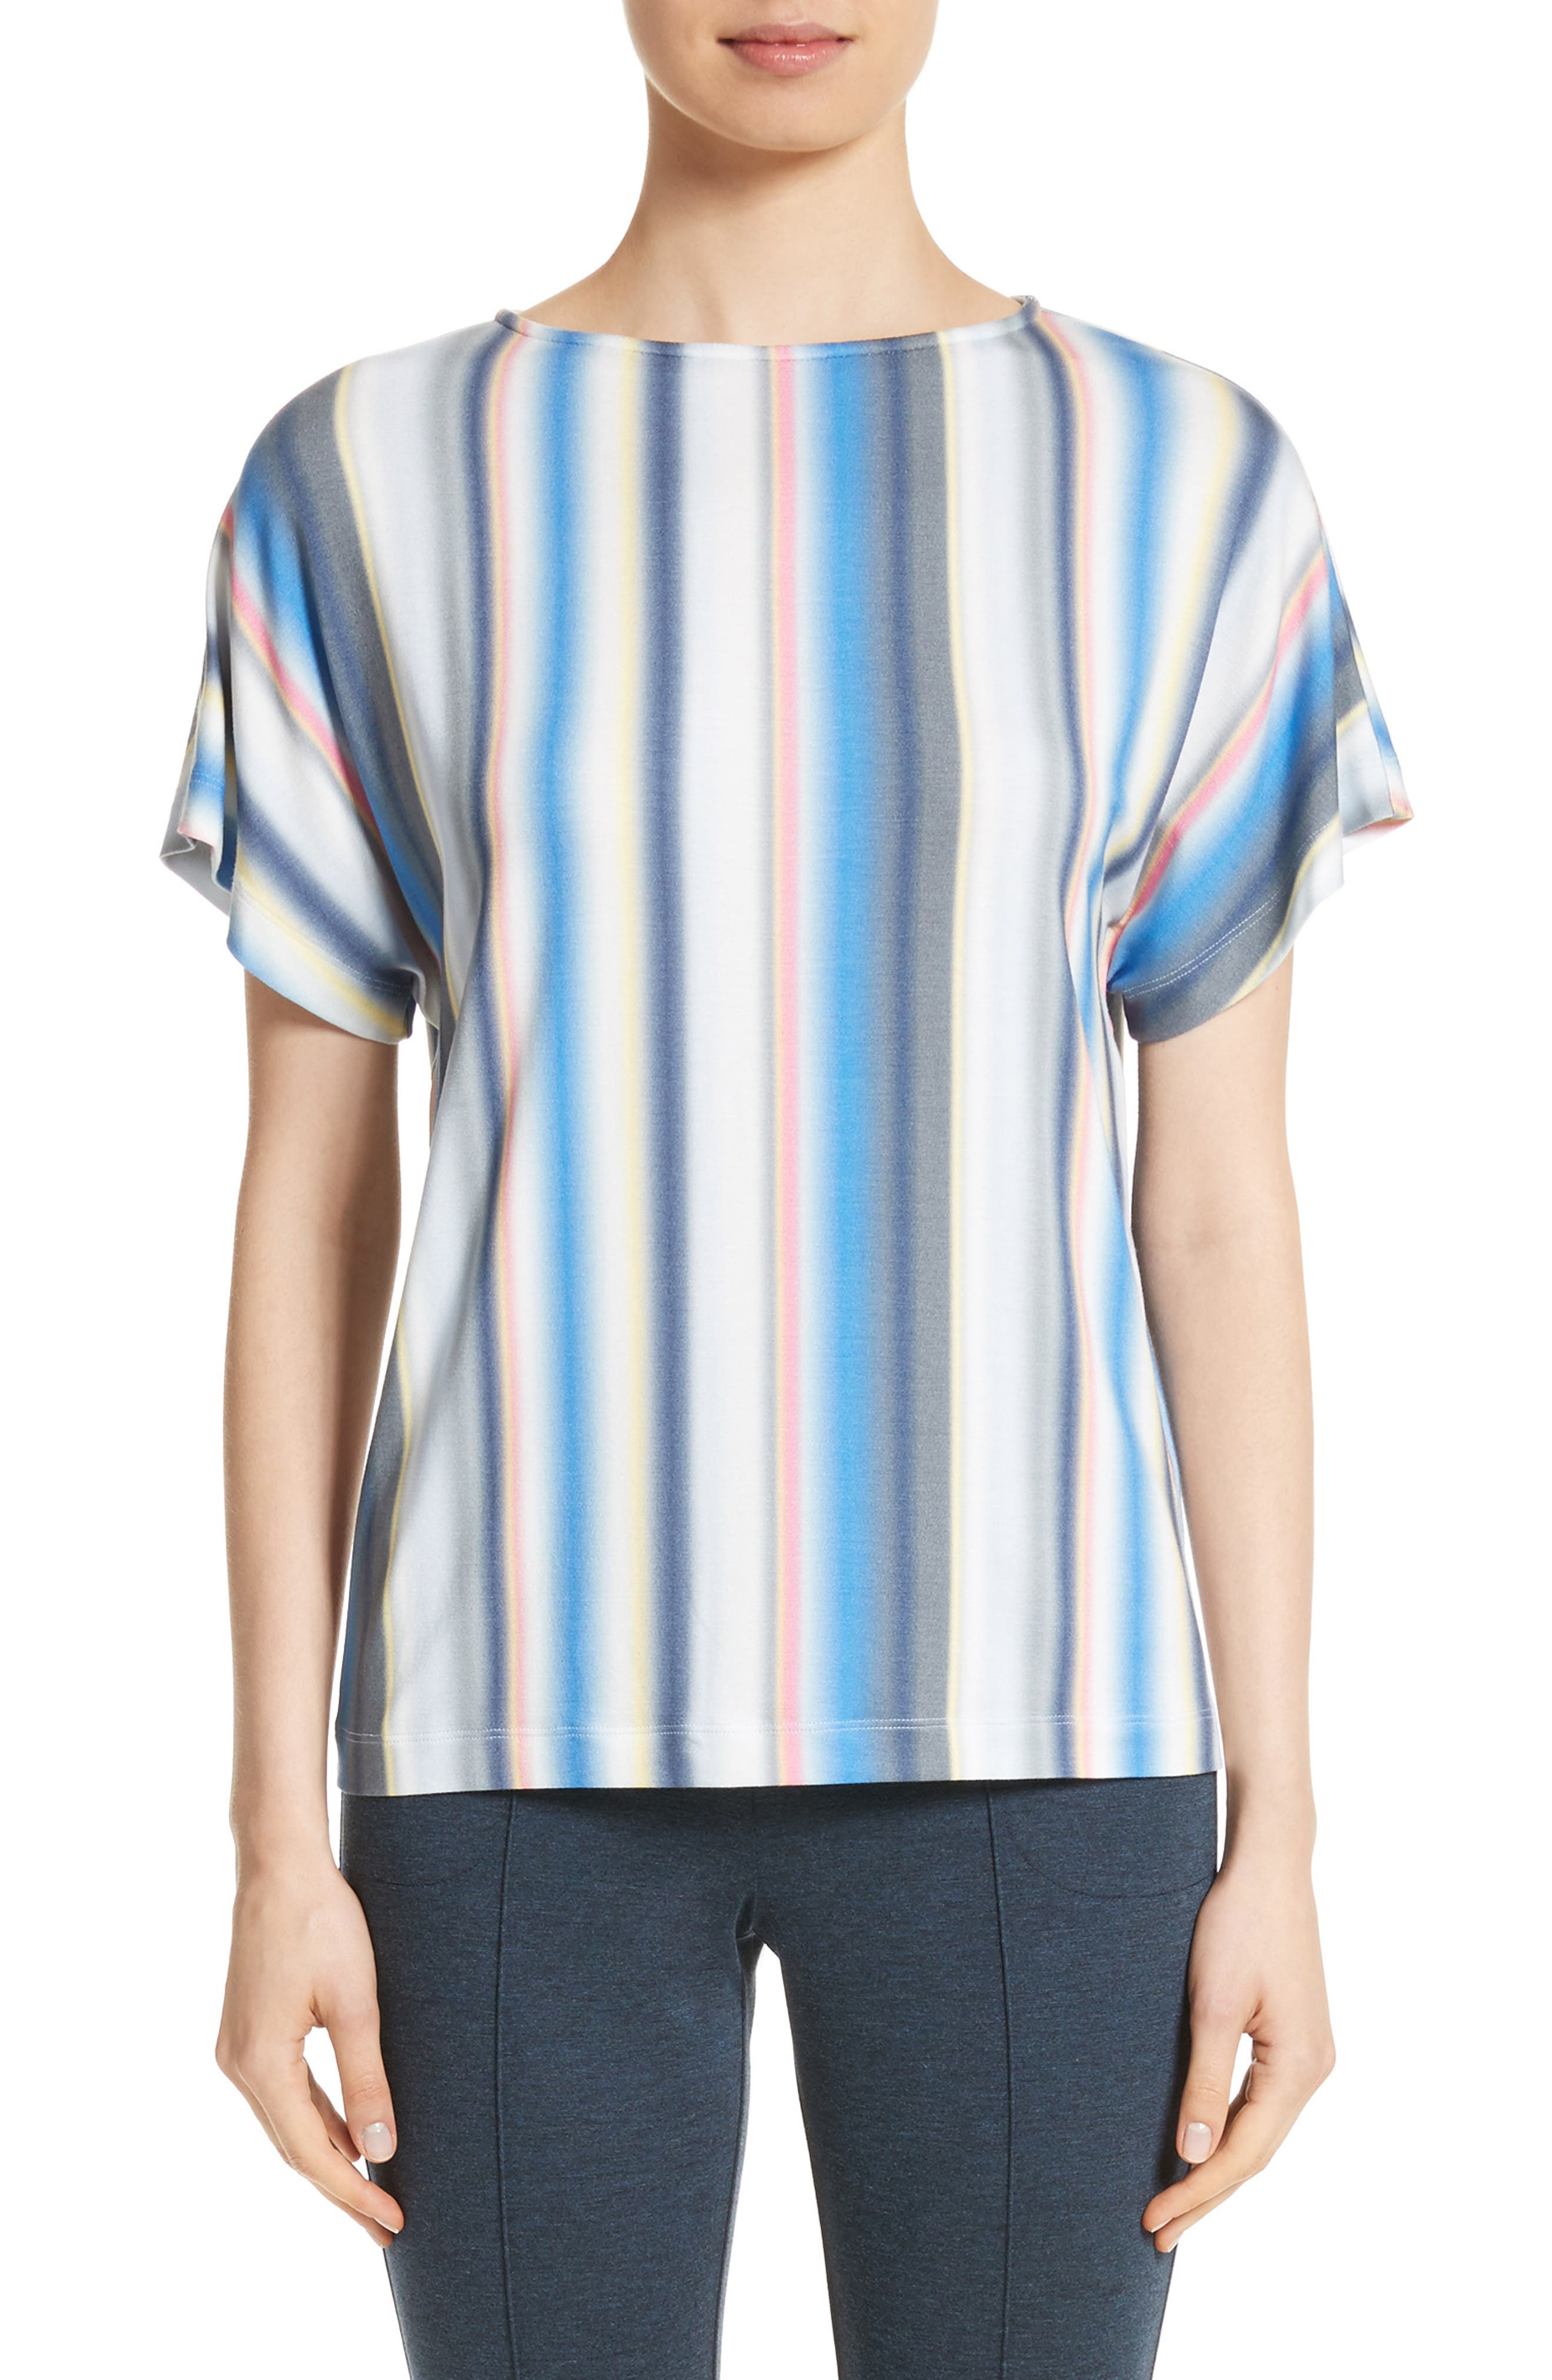 Main Image - St. John Collection Blurred Stripe Jersey Top